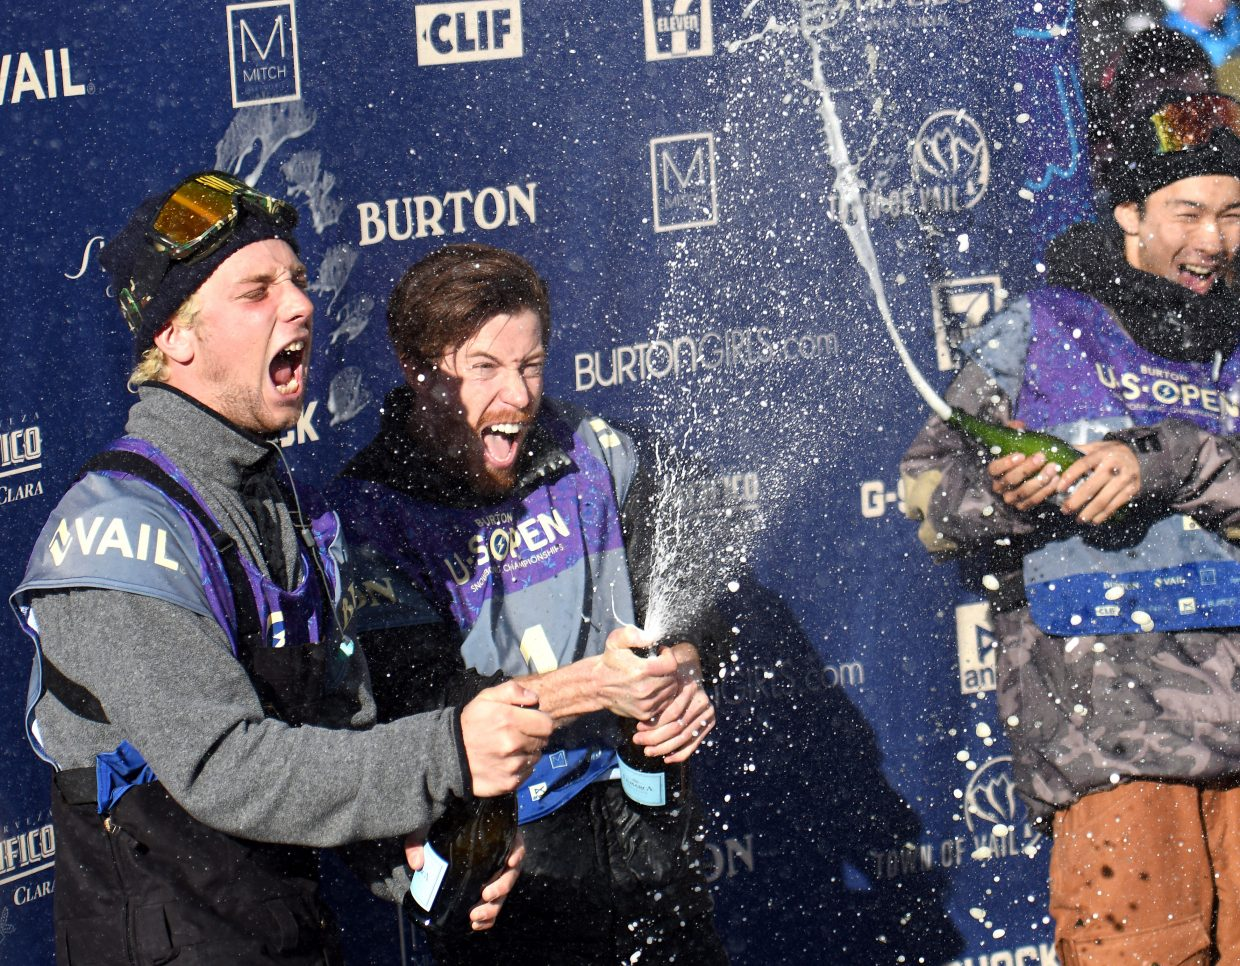 Ben Ferguson, left, Shaun White and Taku Hiraoka celebrate their spots on the podium after Saturday's U.S. Open half-pipe event in Vail.